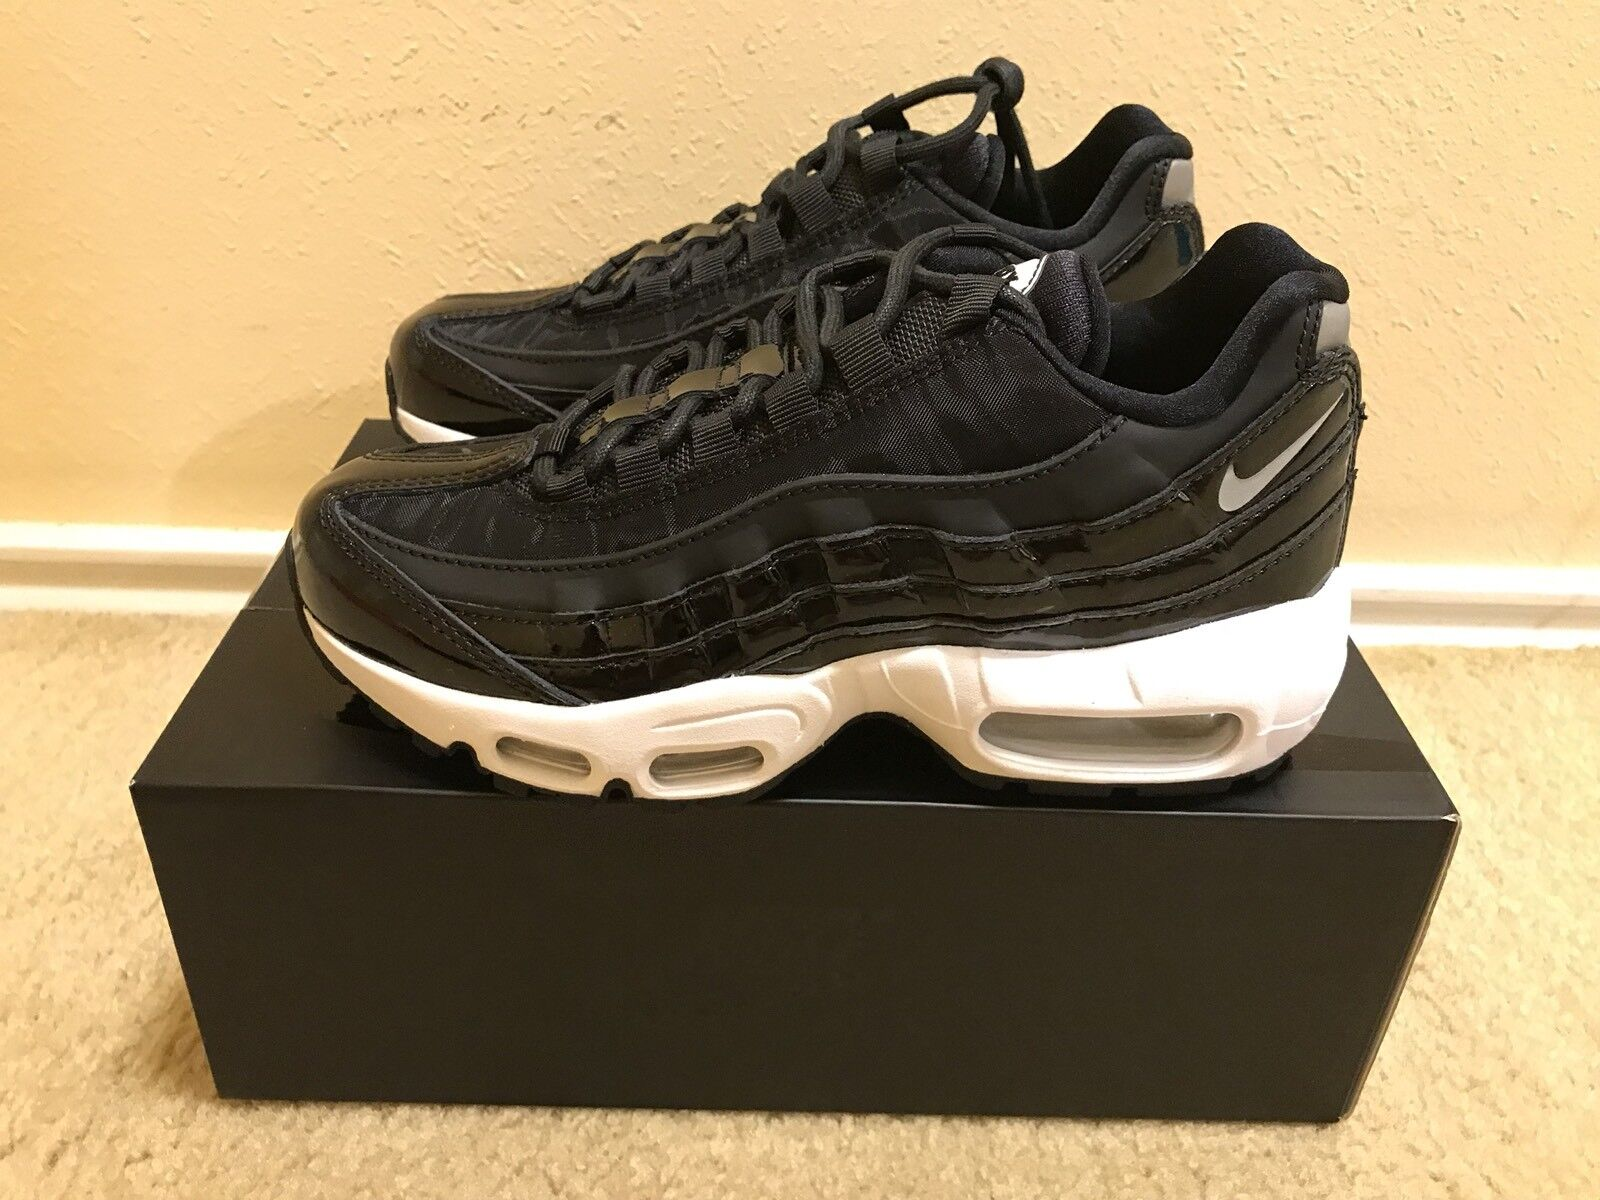 Nike Air Max 95 SE PRM Women's Size 5 Black Reflect Silver- Black AH8697 001 NIB